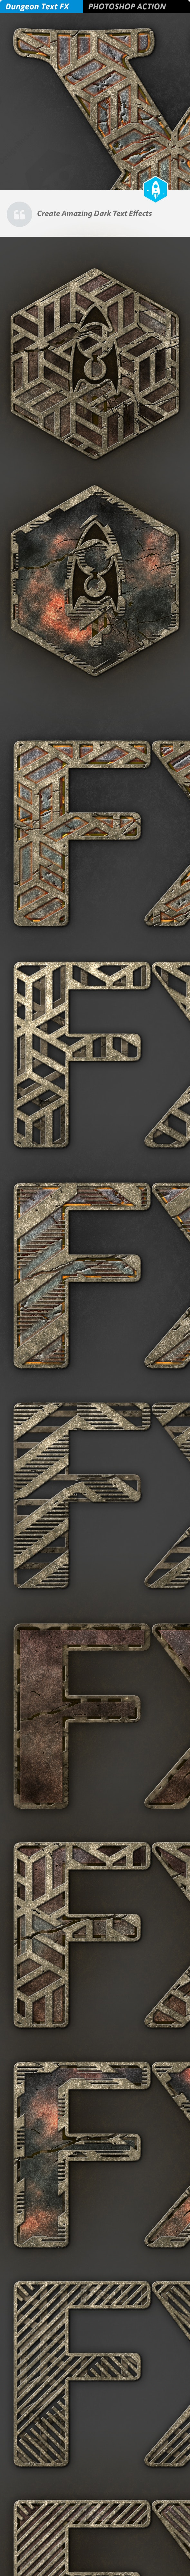 Dungeon Text FX - Text Effects Actions